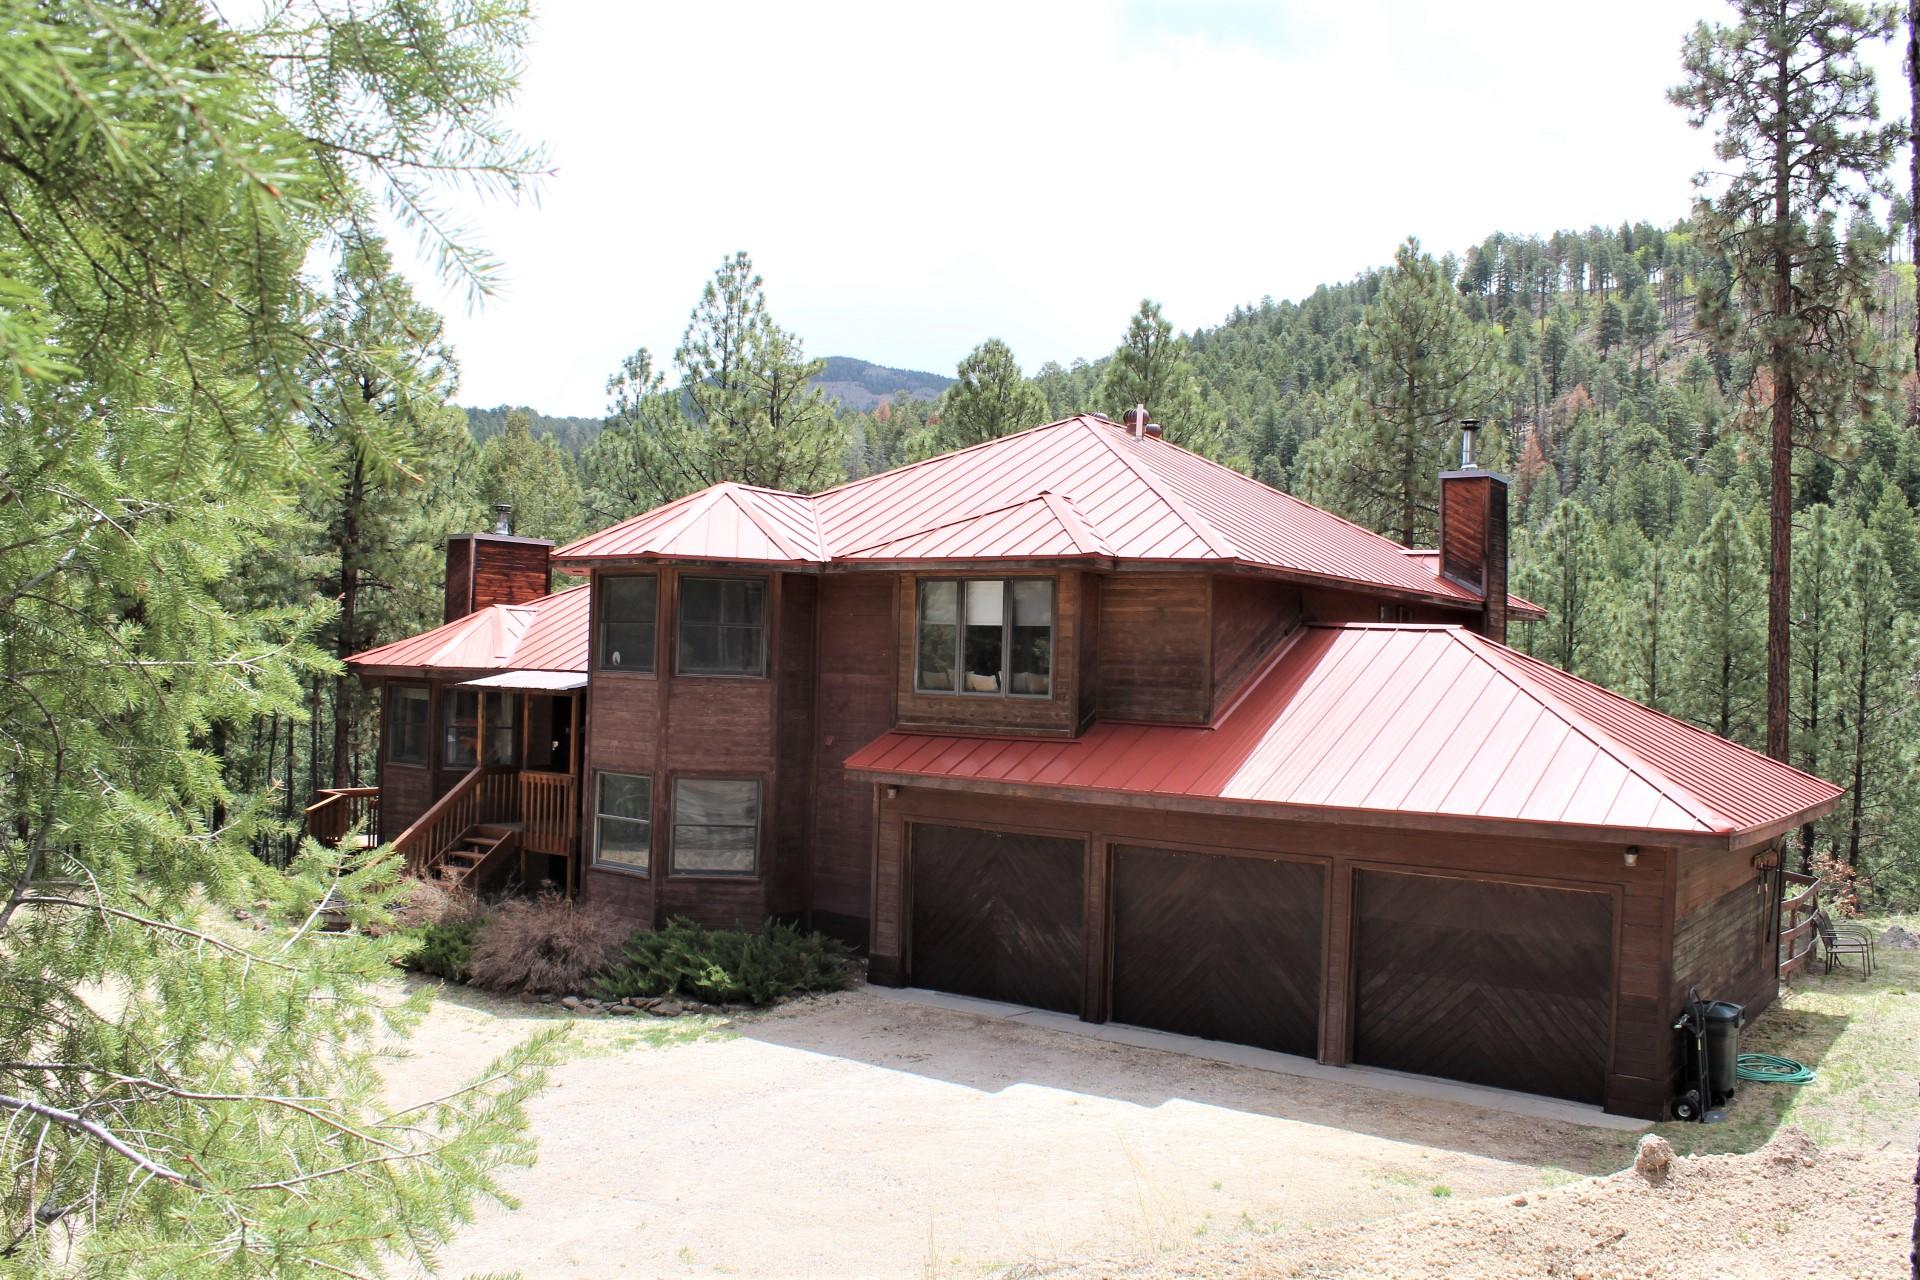 Jemez Mountain Hi-iigh!! Seriously...no kidding...where you feel like you have the forest all to yourself! Quiet & Delightful!! Unique Custom Home with room for everyone & everything to make a fabulous life in the mountains! Over 4000 sq ft AND a 3 car garage on over 5 acres of beautifully forested land. Well-arranged kitchen has eat-at-bar, dining area, loads of cabinet/pantry space, double oven & deck access. Formal Dining & Den access deck too! You're gonna love the view from the hot tub perch! Master has huge lovely bath with step in shower and jetted garden tub, sitting room/office & super sweet balcony for late night star-gazing! Basement Rec-Room & pool table can stay! Brand new septic! Come & Get It!!